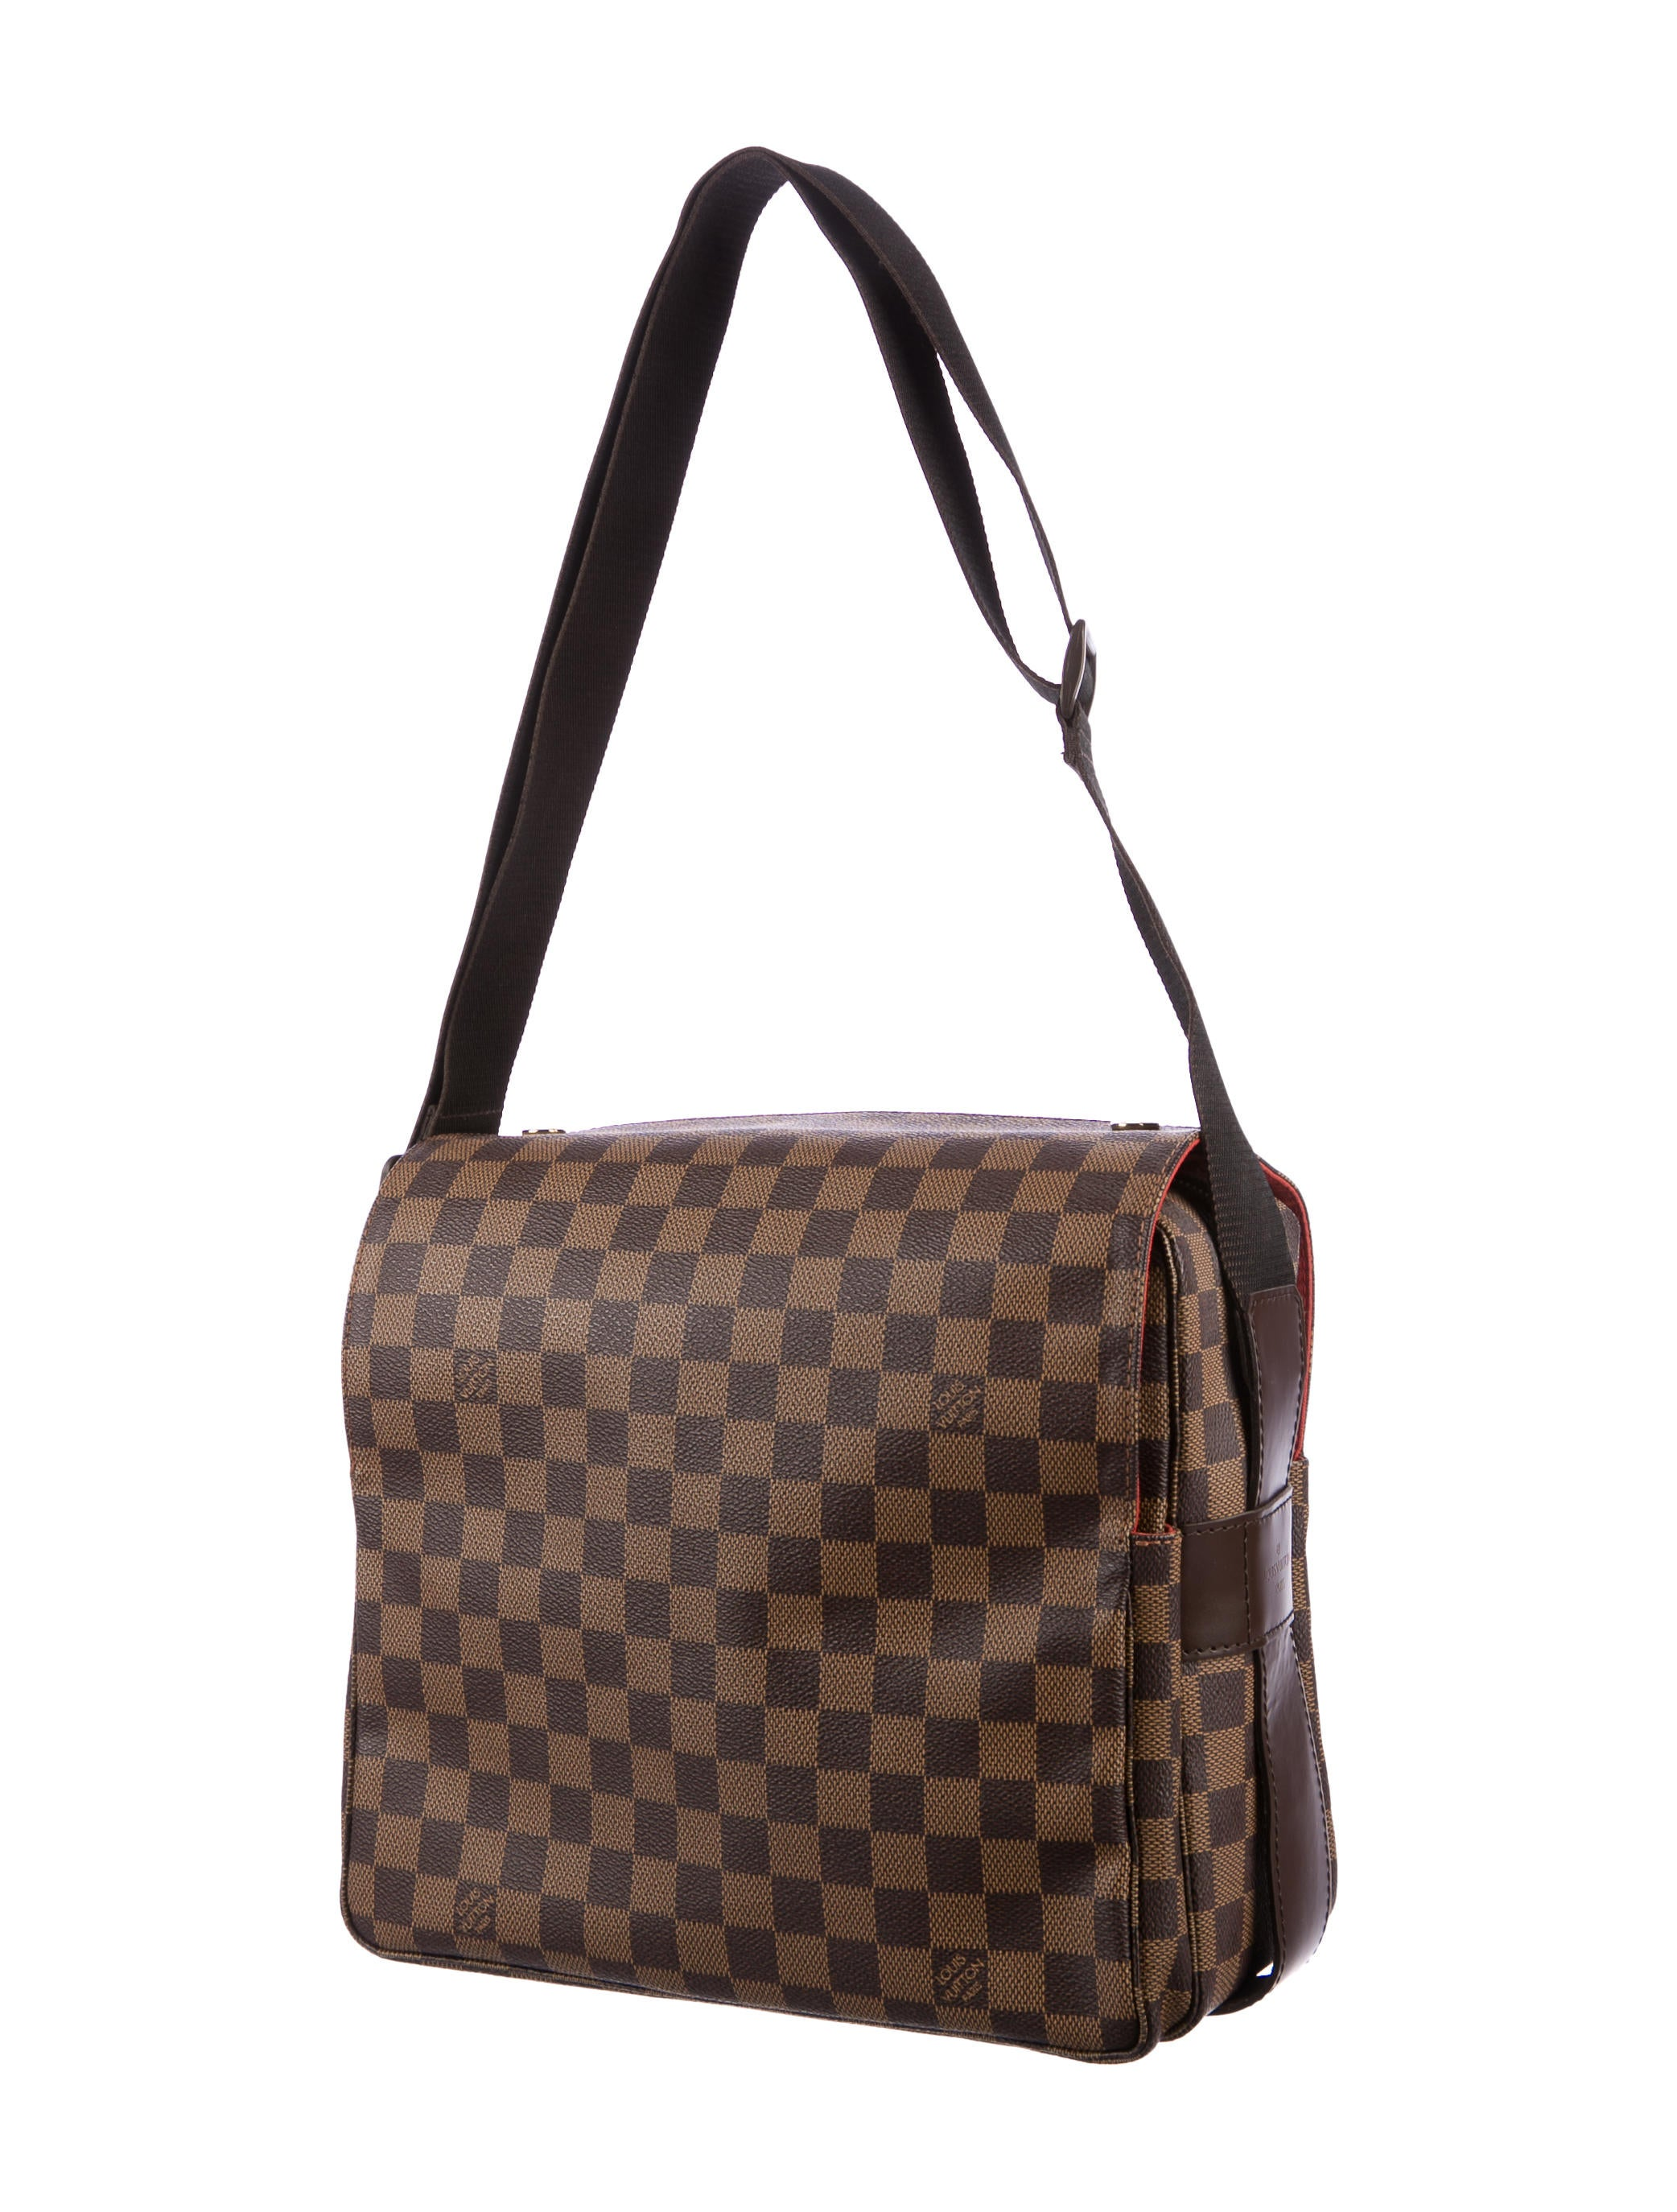 Wonderful Louis Vuitton Messenger Bag In Brown | Lyst